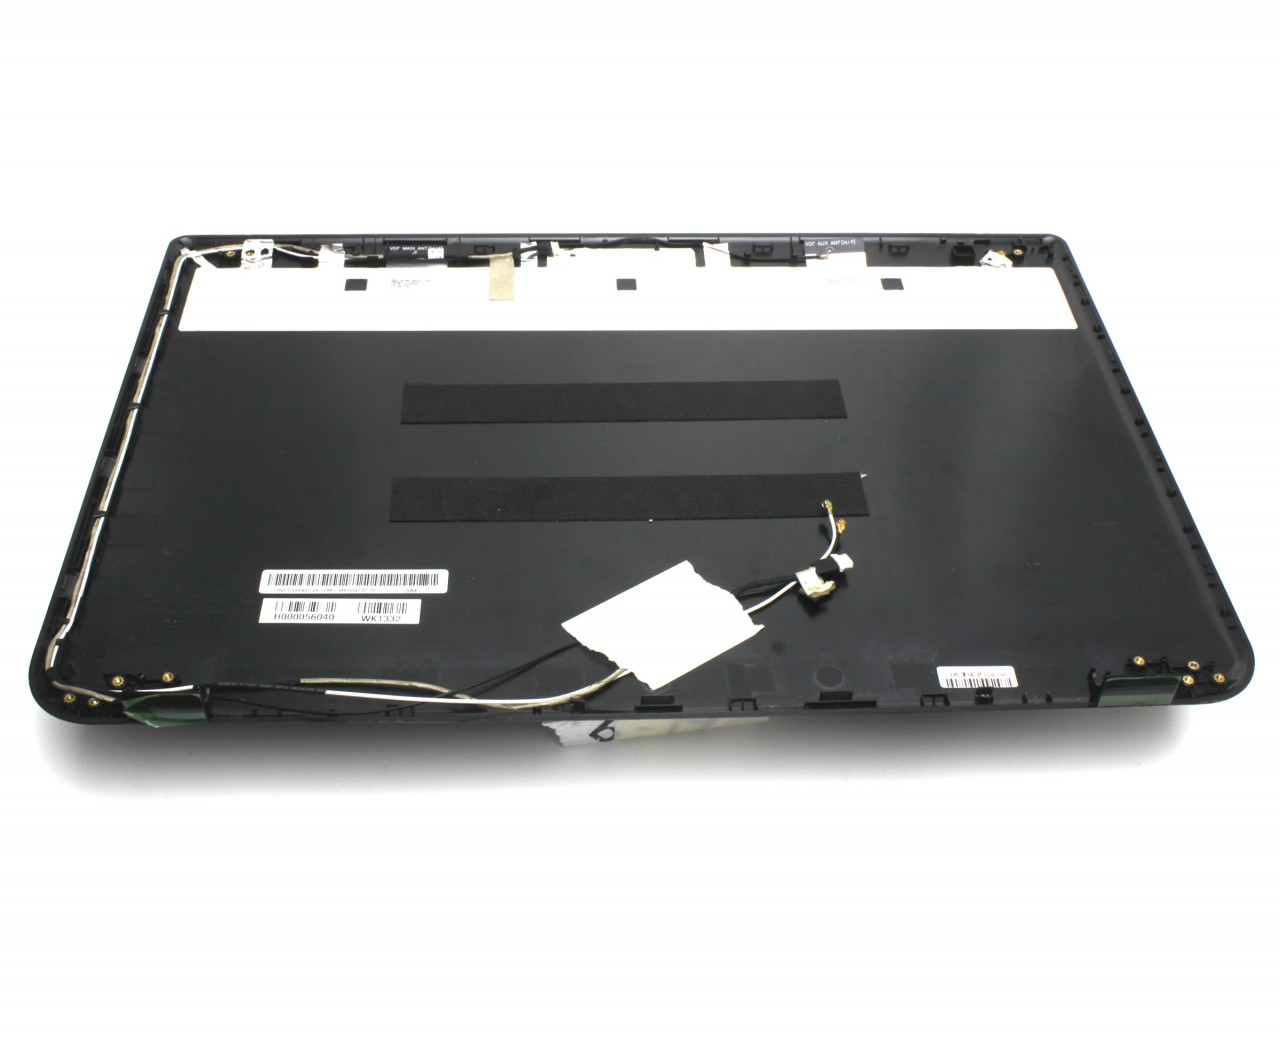 Capac Display BackCover Toshiba Satellite L50 A Carcasa Display Neagra imagine powerlaptop.ro 2021